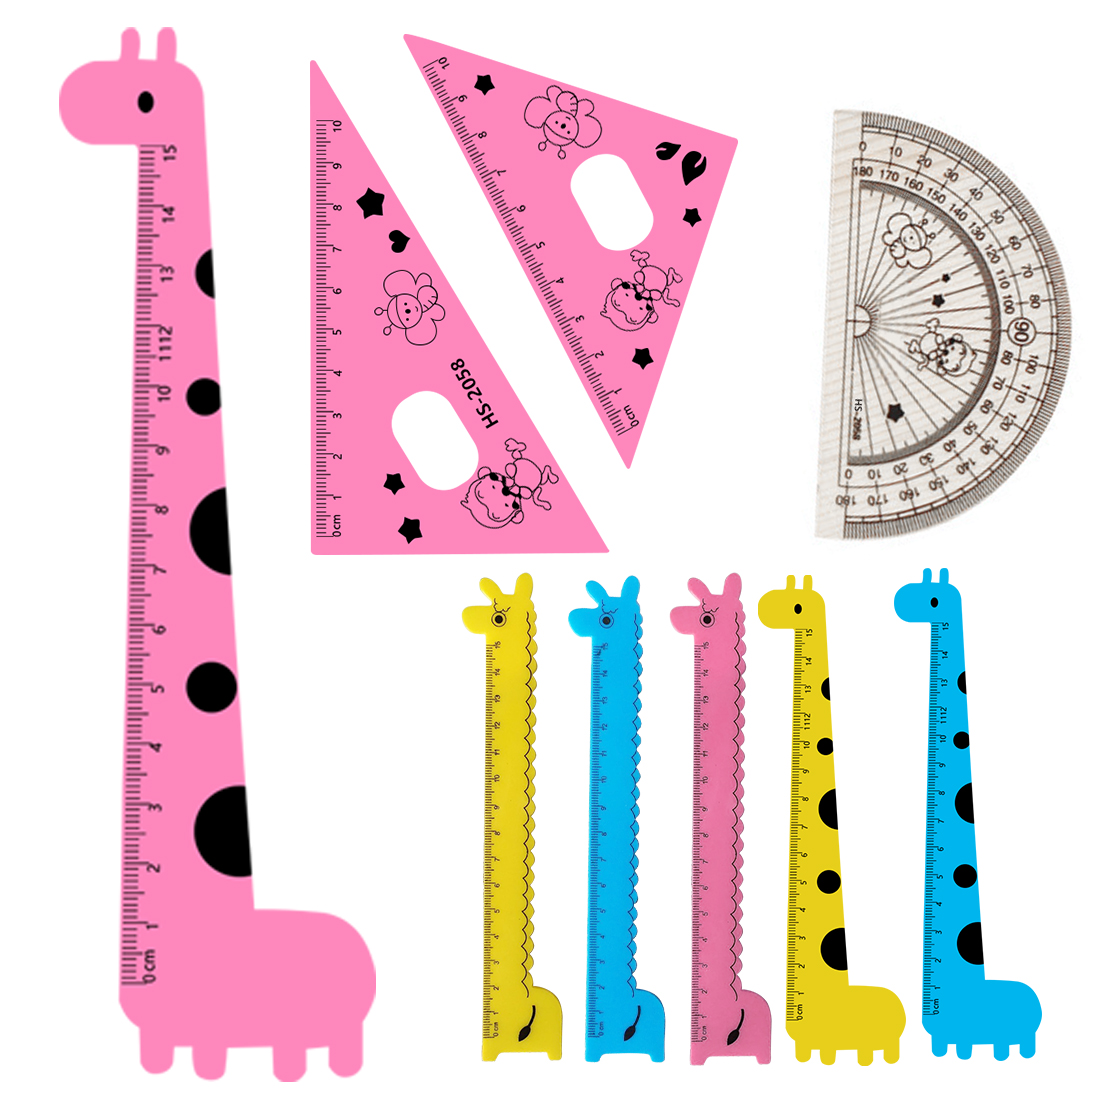 FangNymph Cute Cartoon Giraffe Pattern Student Set Ruler Student Kids Drafting Stencil Ruler Stationery 4PCS Pink Style Random